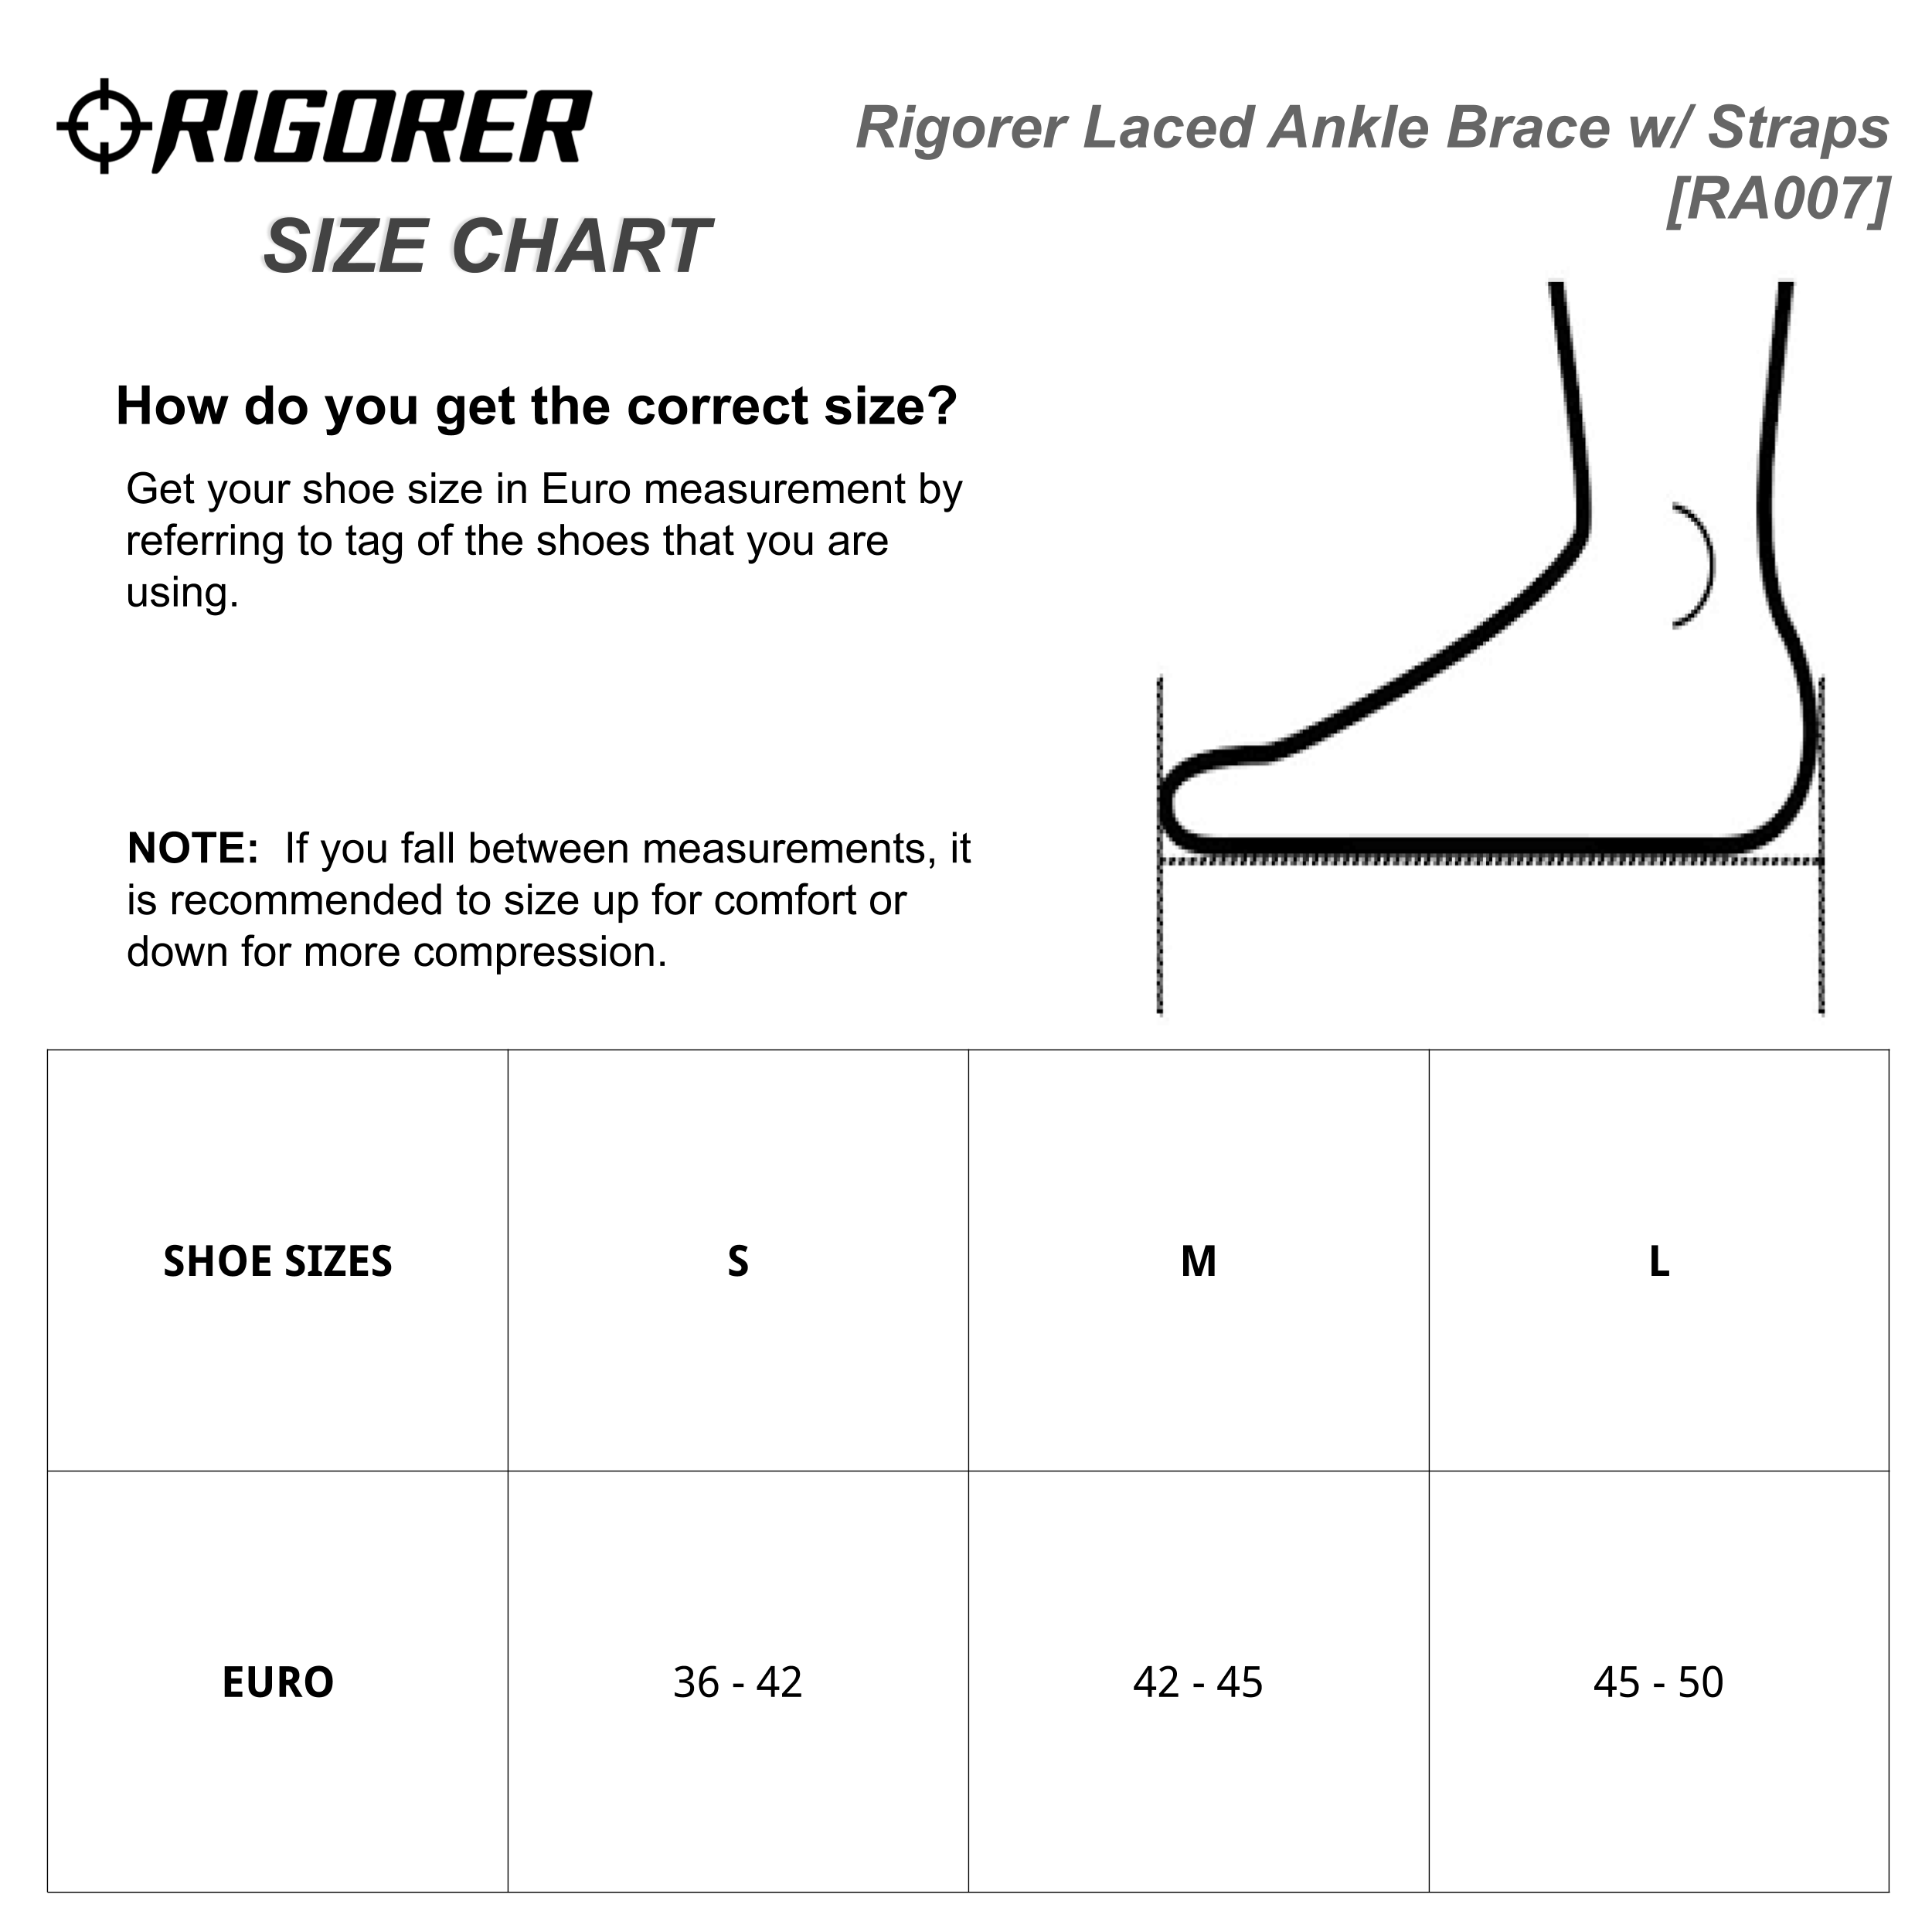 Rigorer Laced Ankle Brace w/ Straps [RA007] Sizing Chart